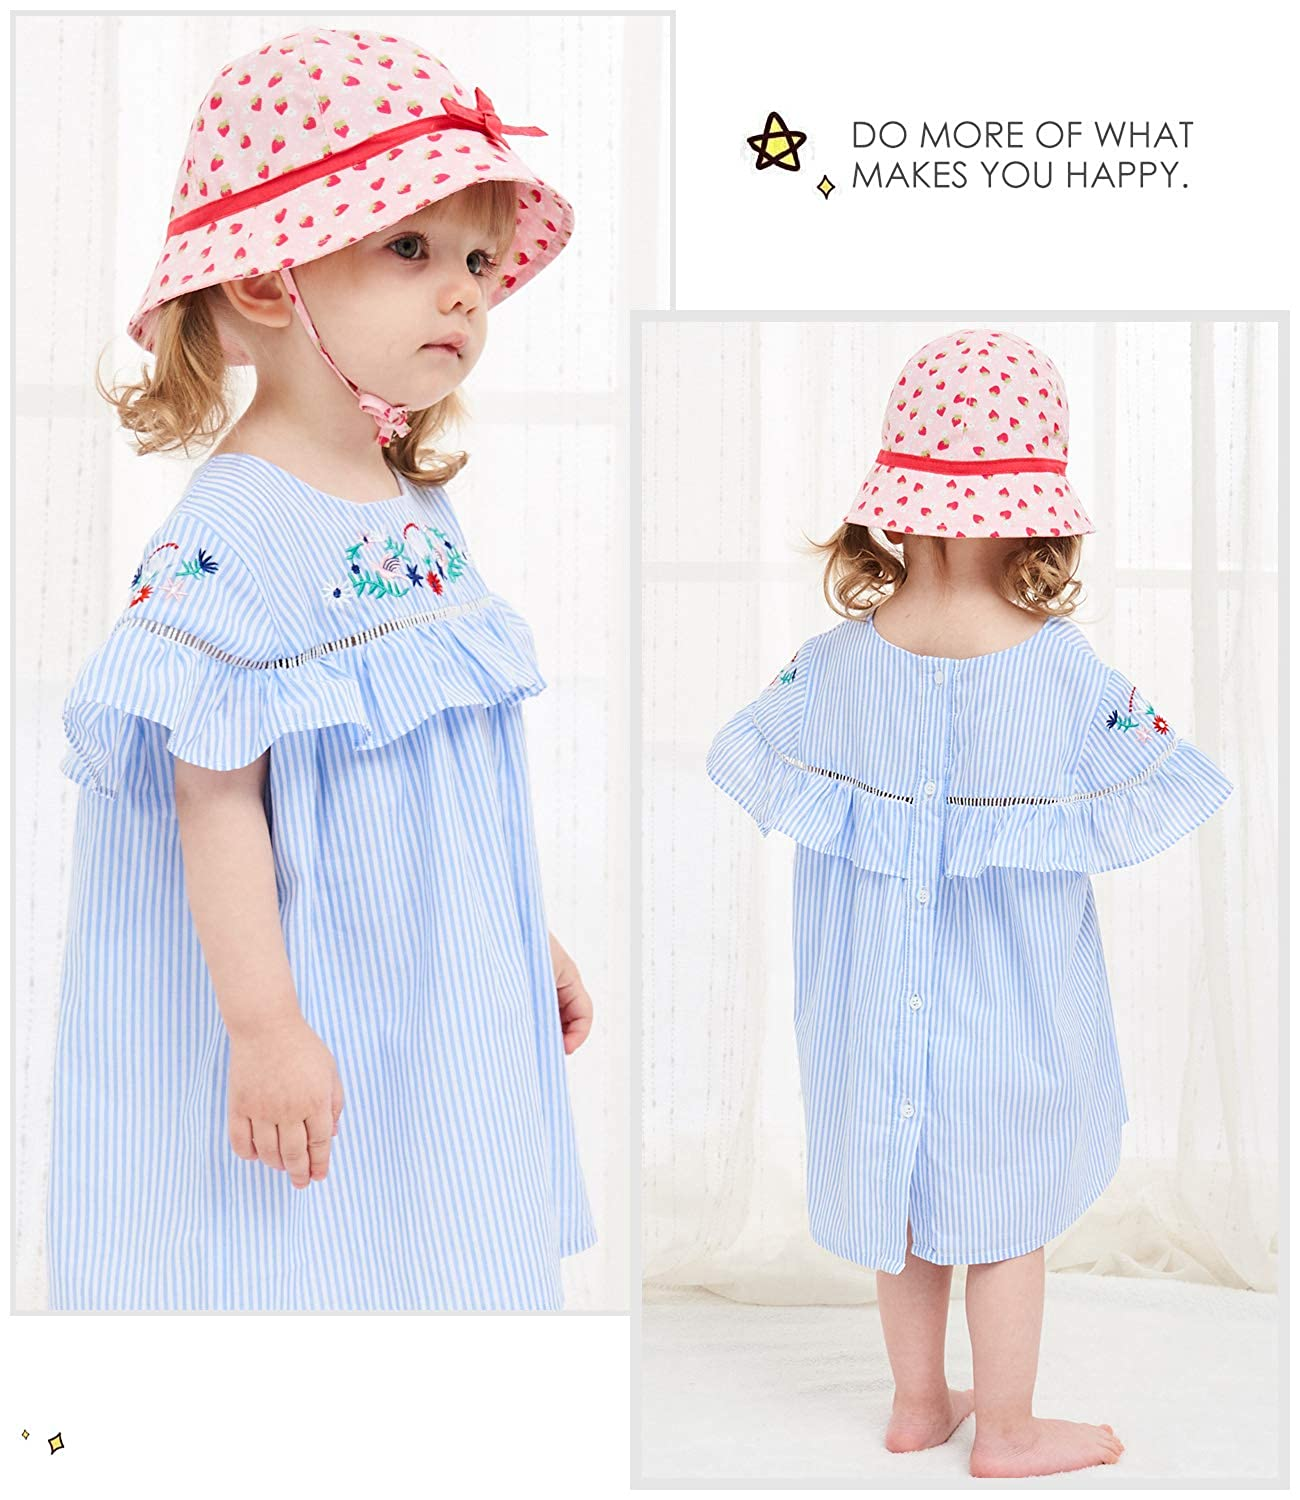 Alleza Kids Bucket Sun Hat for Girls Toddlers Baby Cotton Breathable Beach Sun Protection Cap Strawberry Cute Adjustable Multi Size